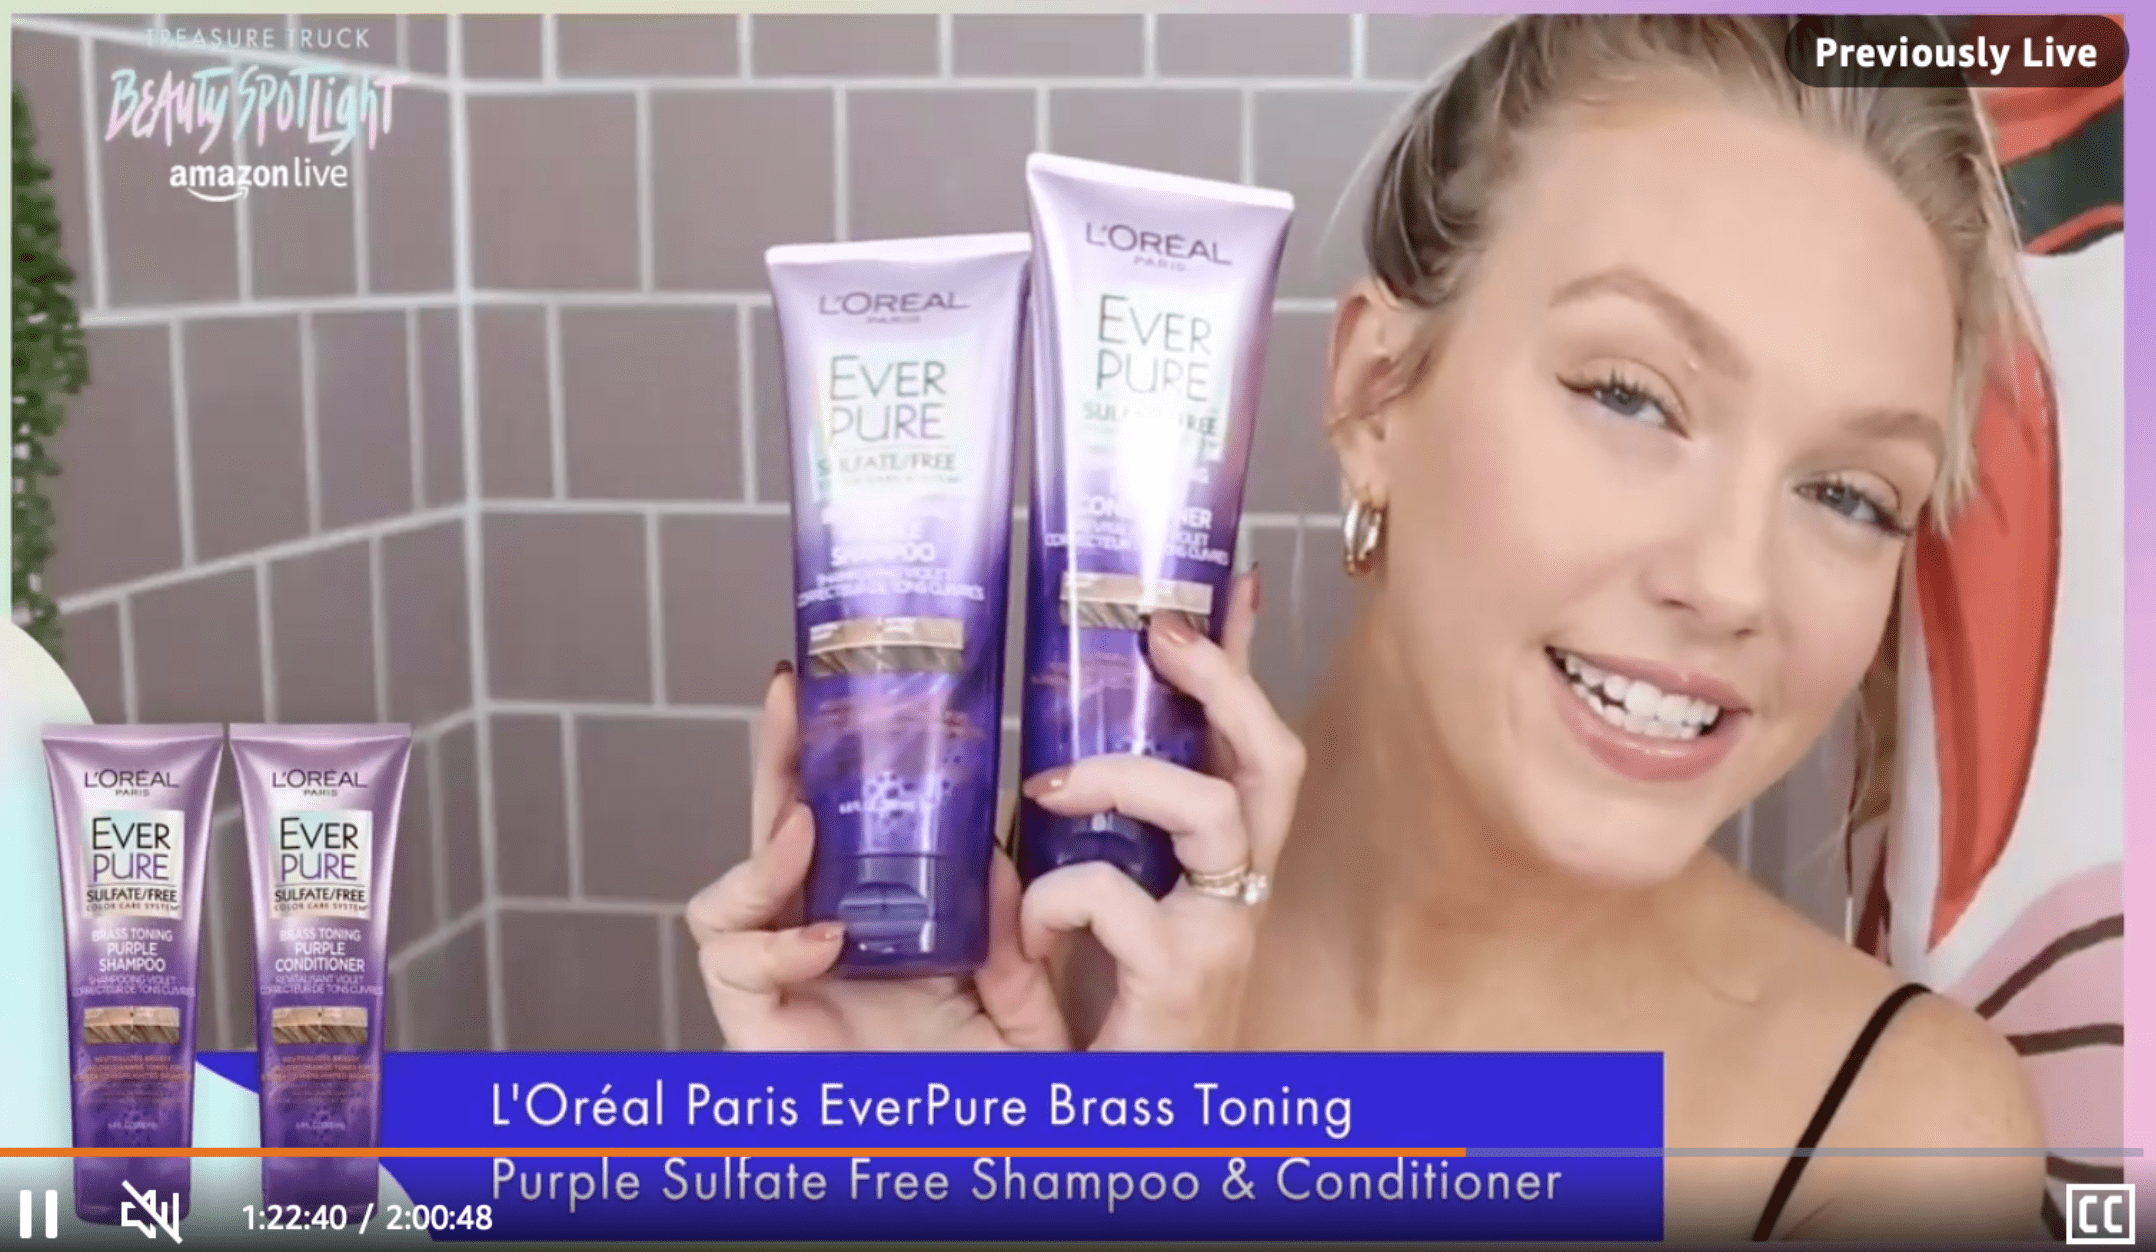 l'oreal product demonstration in beauty spotlight, a virtual livestream experiential event